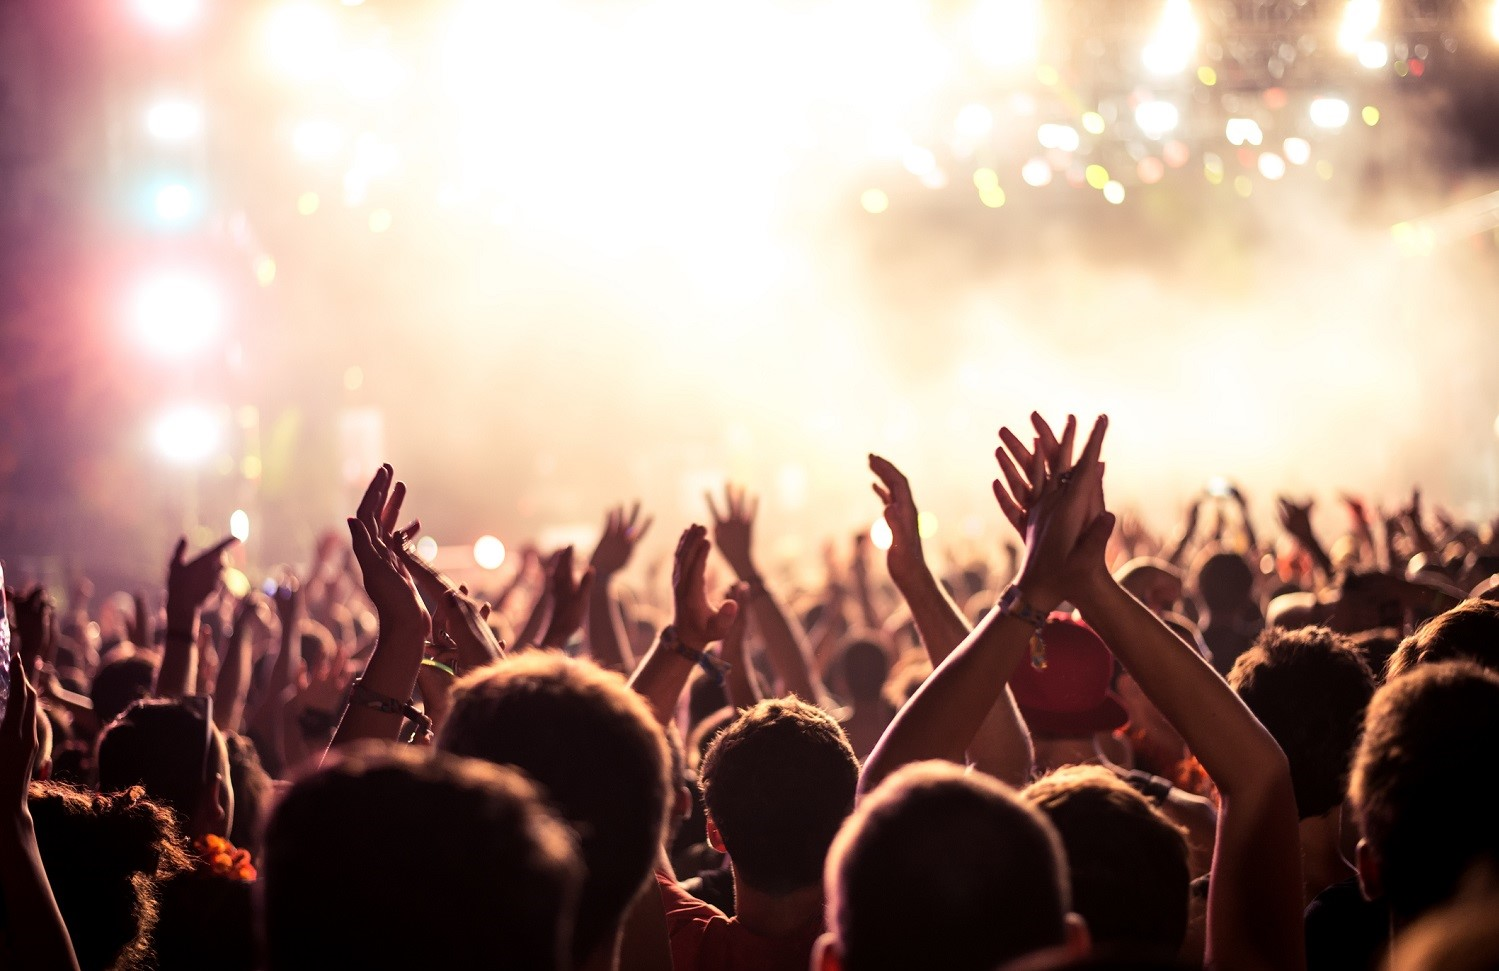 Audience with hands raised at a music festival and lights streaming down from above the stage. Soft focus, blurred movement.